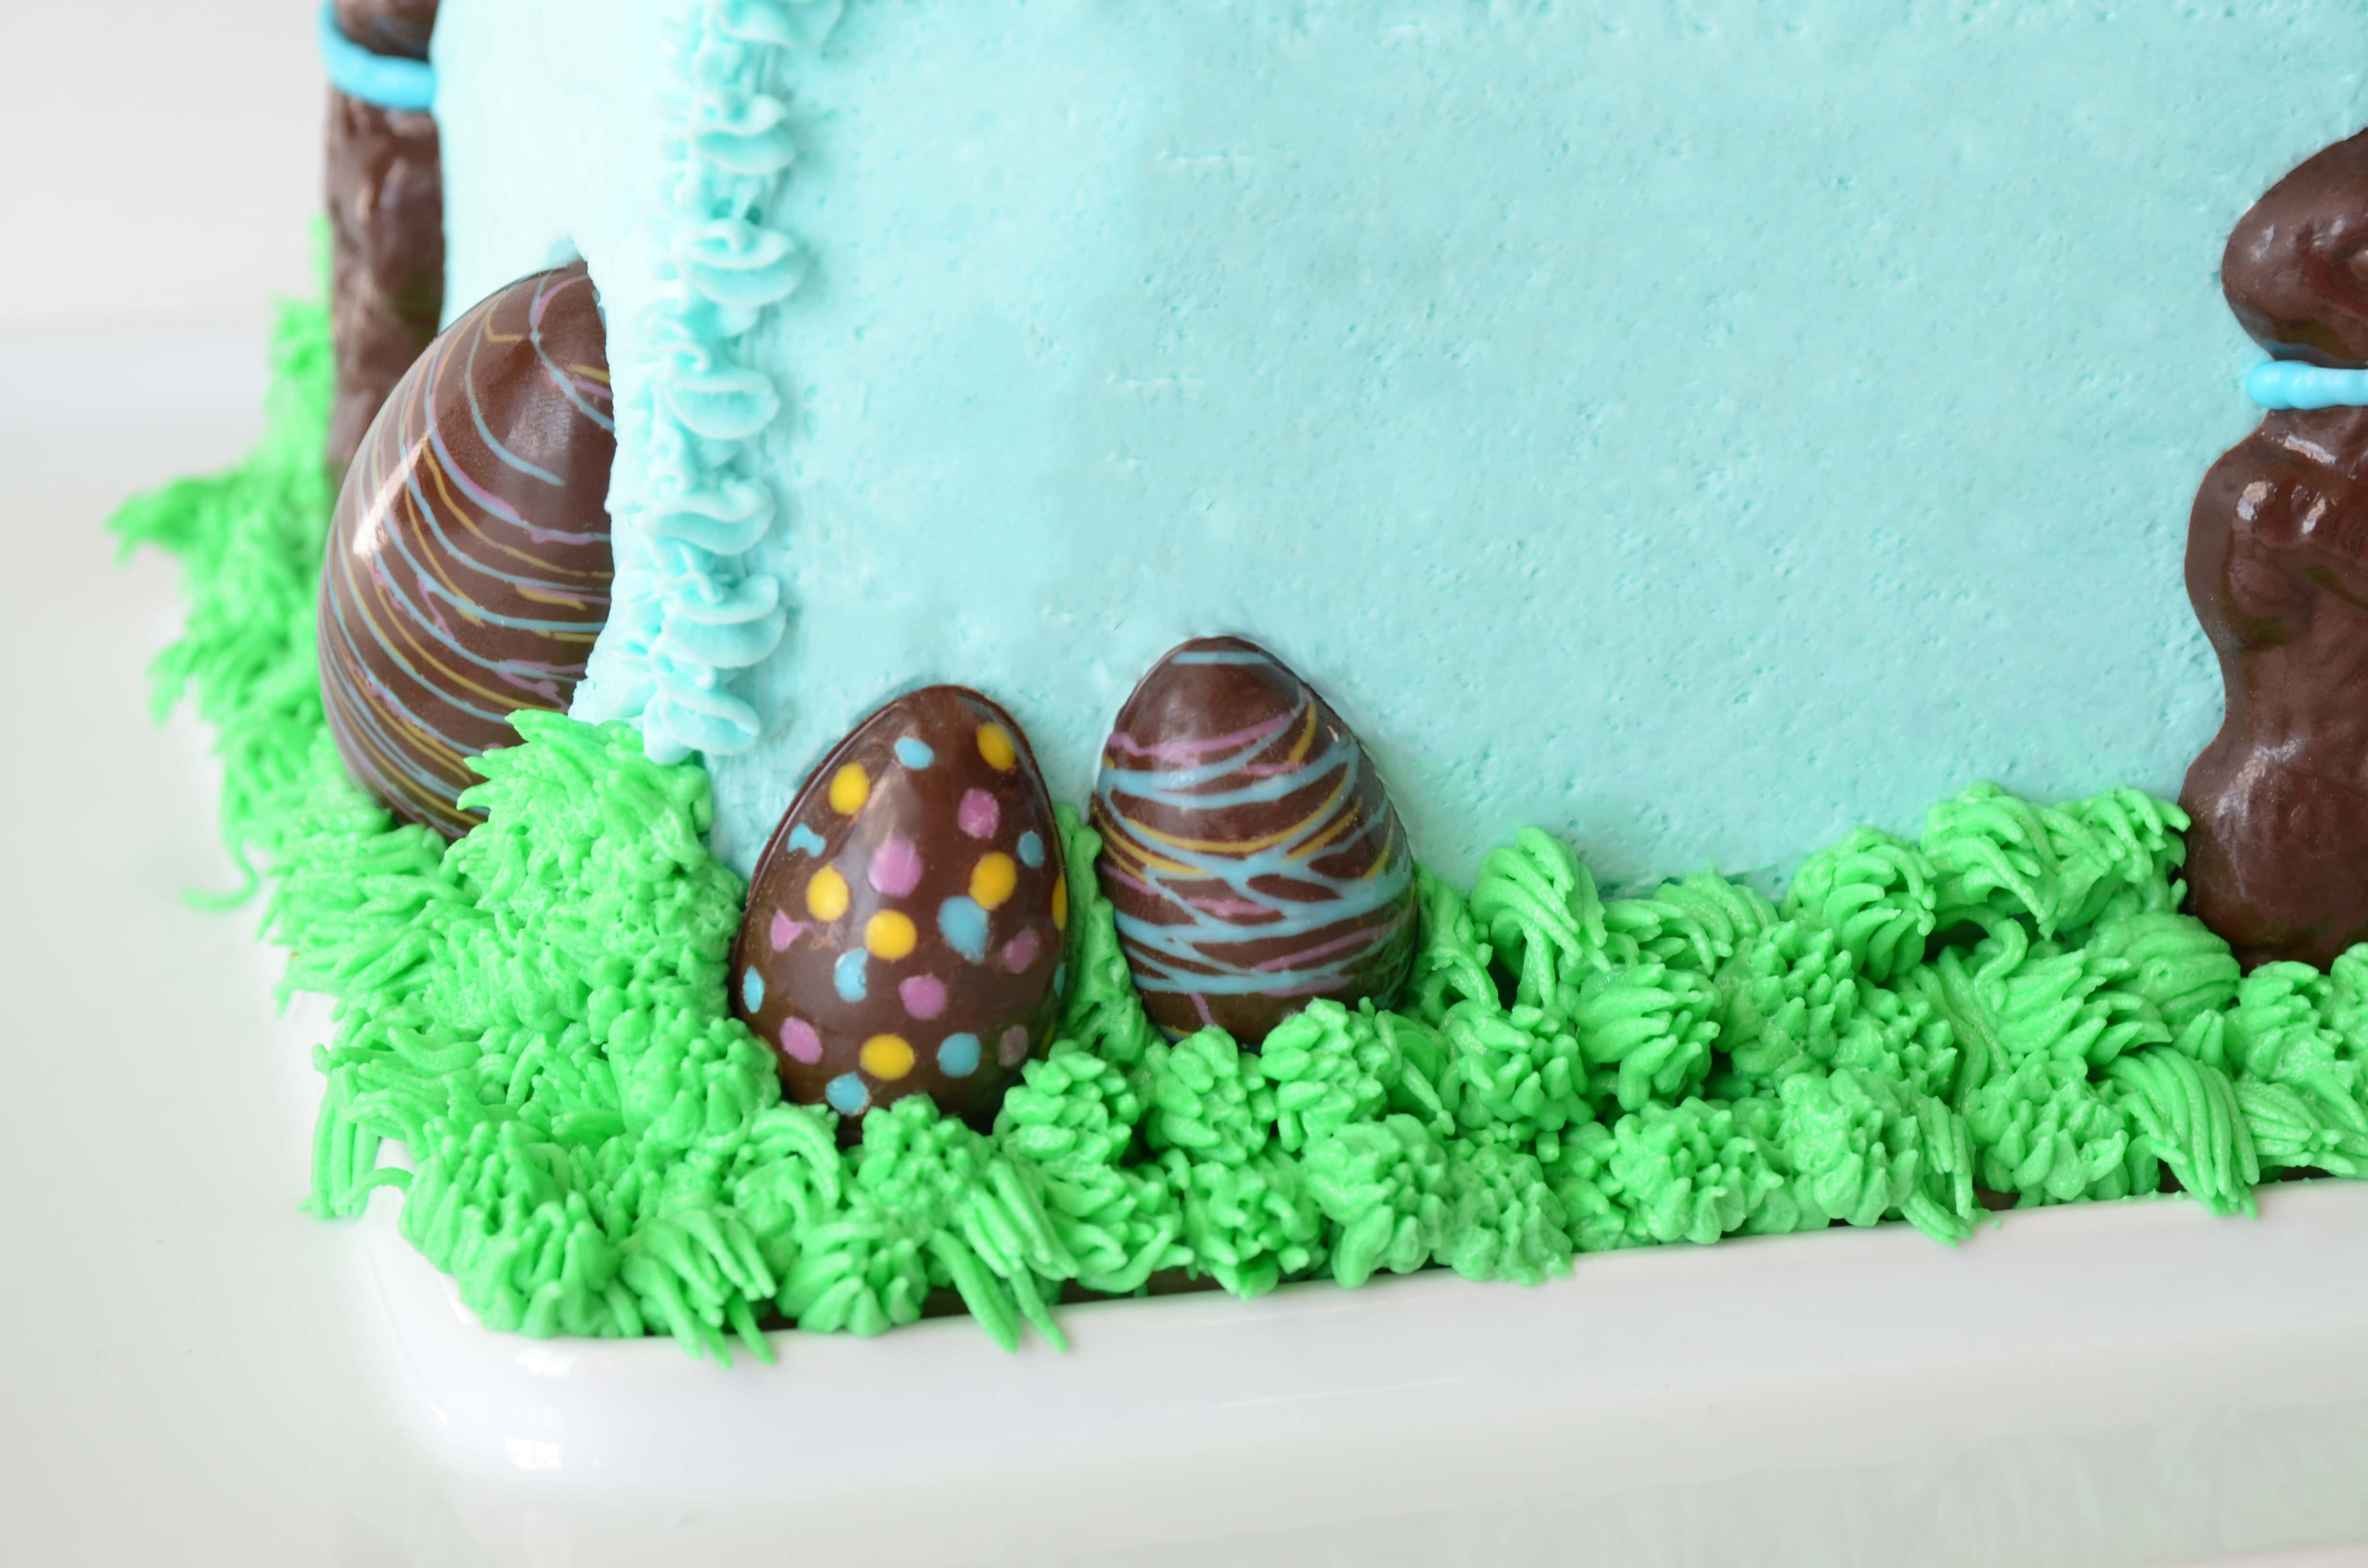 Chocolate Bunny in Grass Egg Closeup2 - Chocolate Easter Bunny Cake